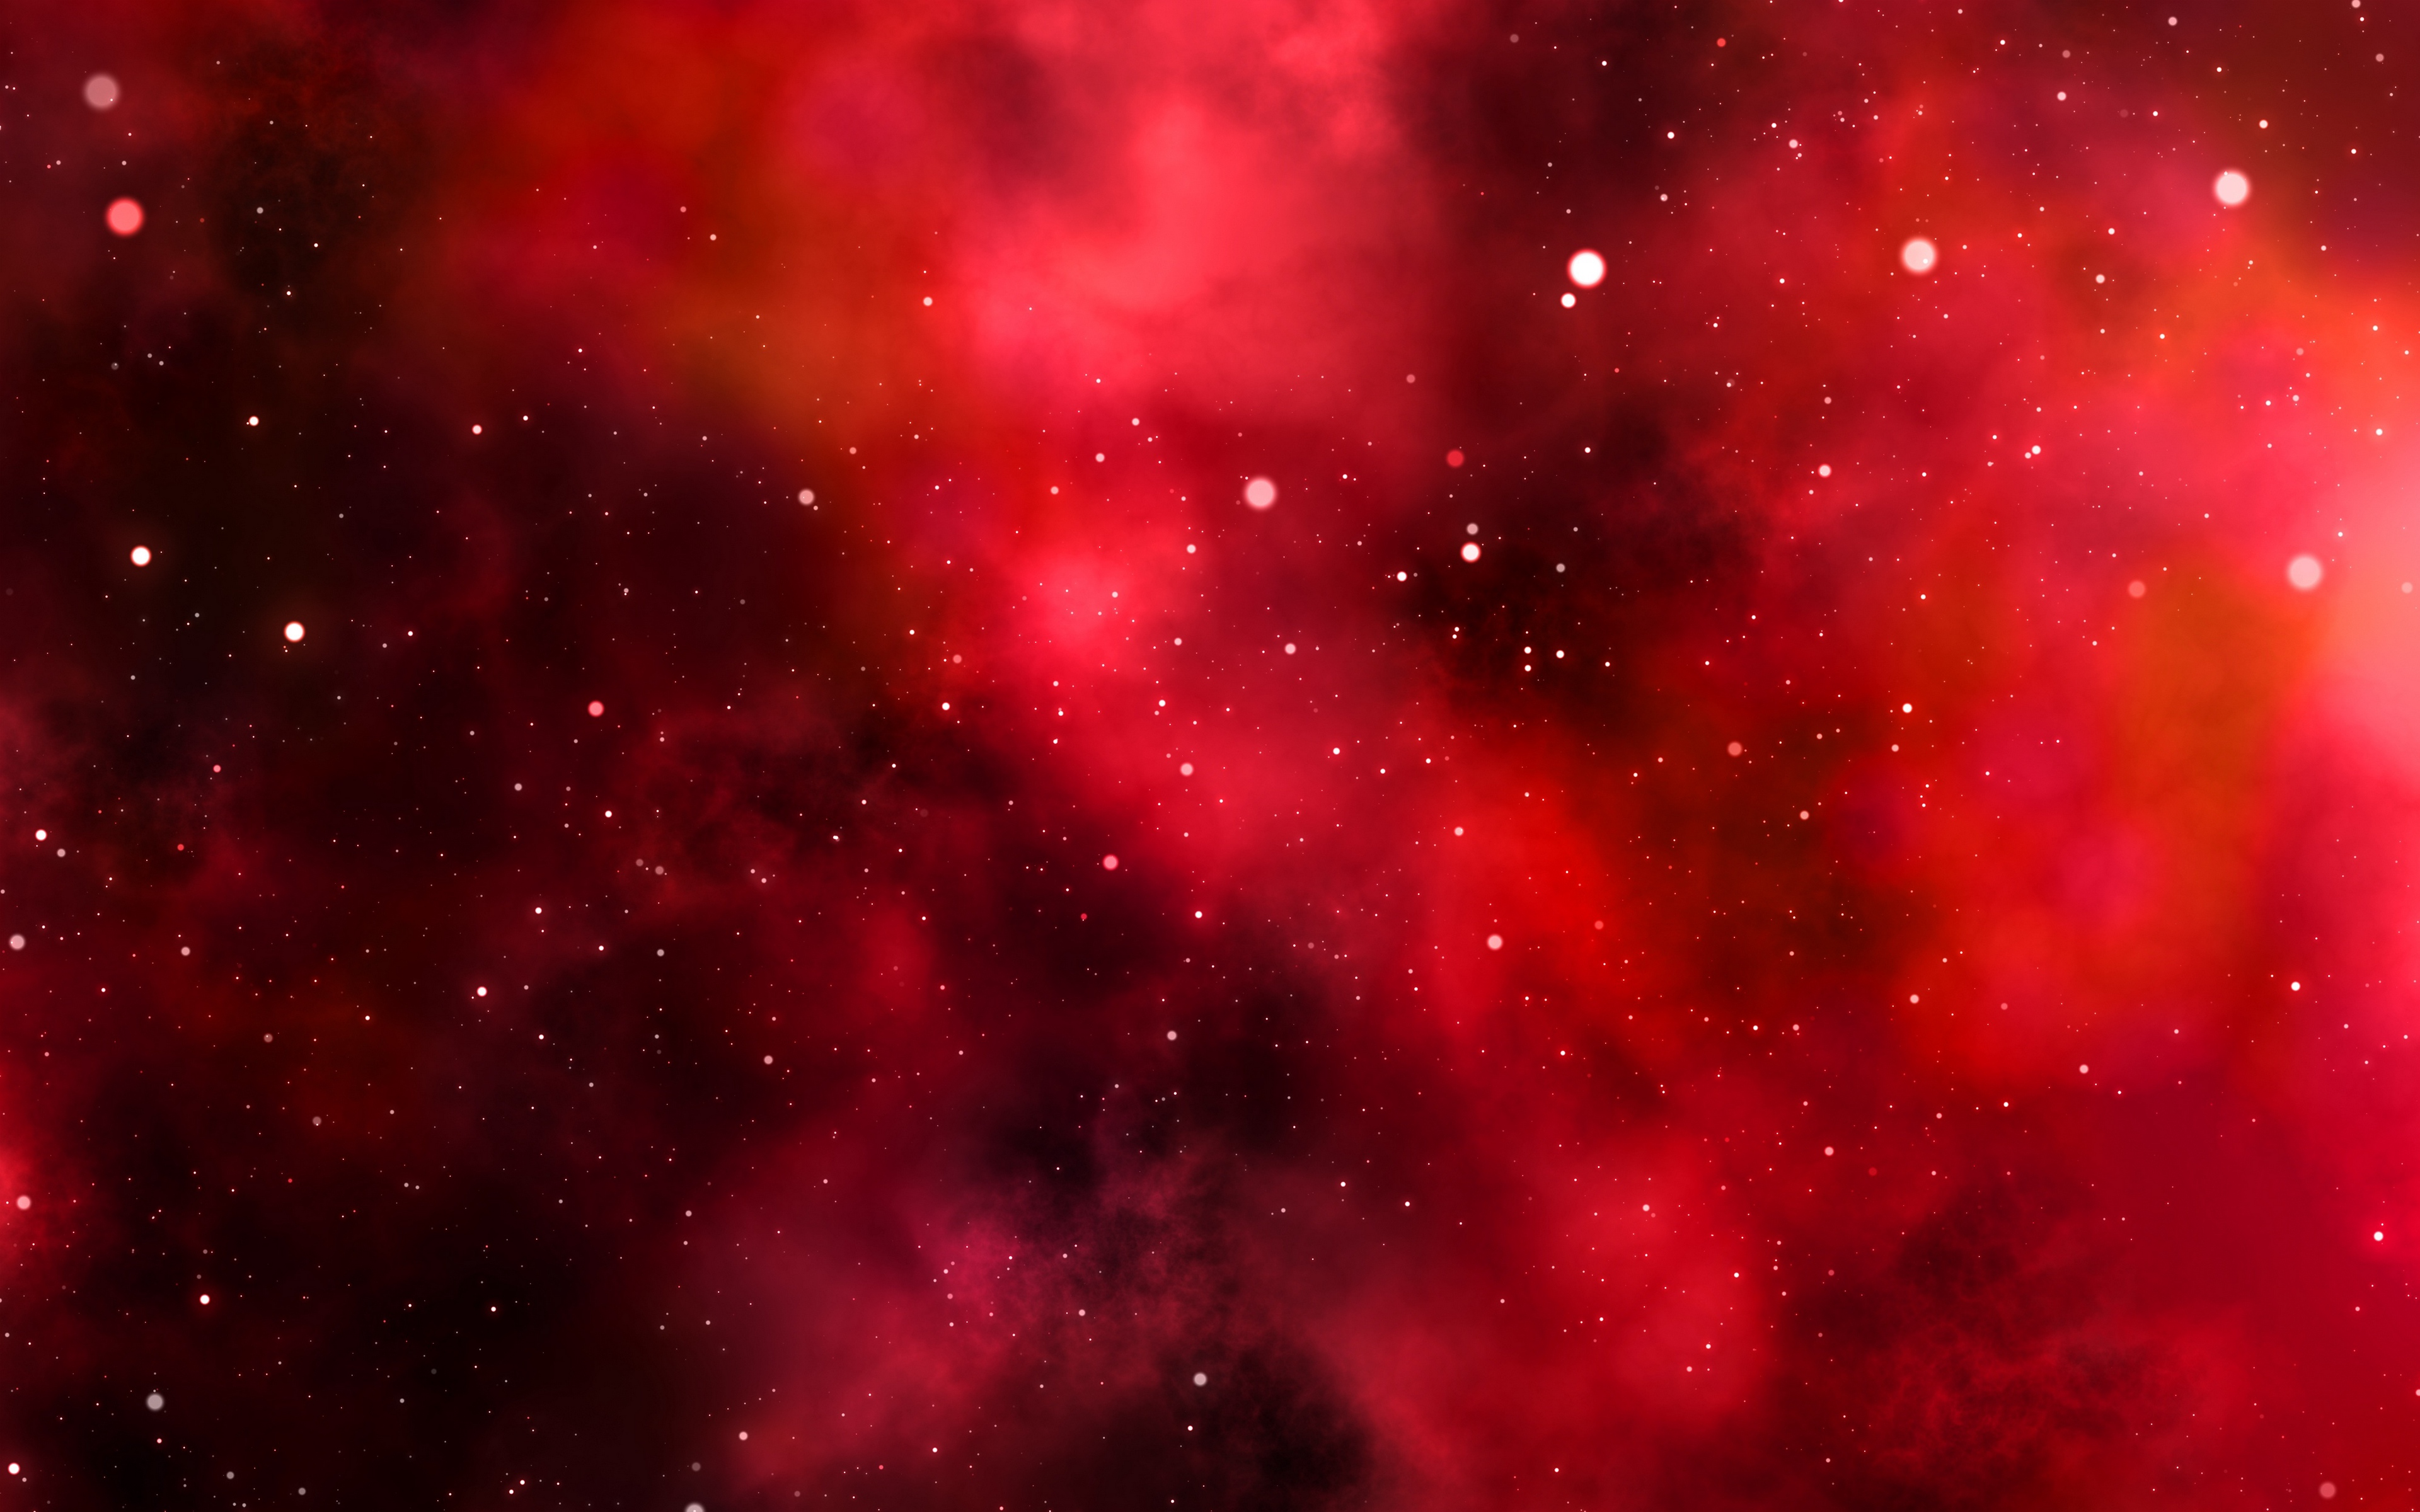 Wallpaper Galaxy Space Red Shine Universe Red Galaxy Wallpaper 4k 3840x2400 Download Hd Wallpaper Wallpapertip